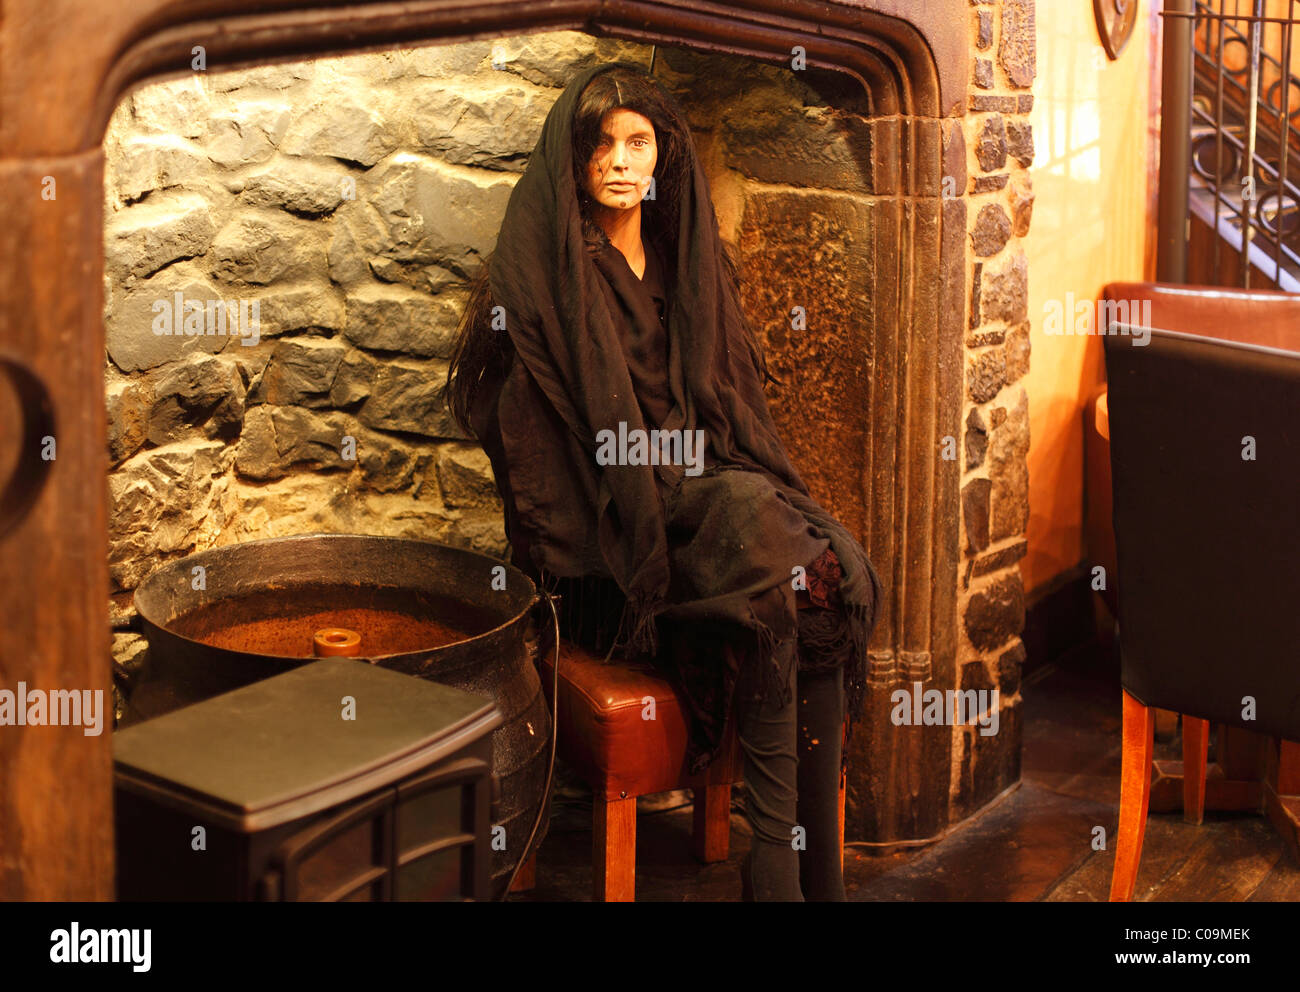 Life-size figure of the witch Alice Kyteler in a pub, Kyteler's Inn, Kilkenny, County Kilkenny, Ireland, British - Stock Image